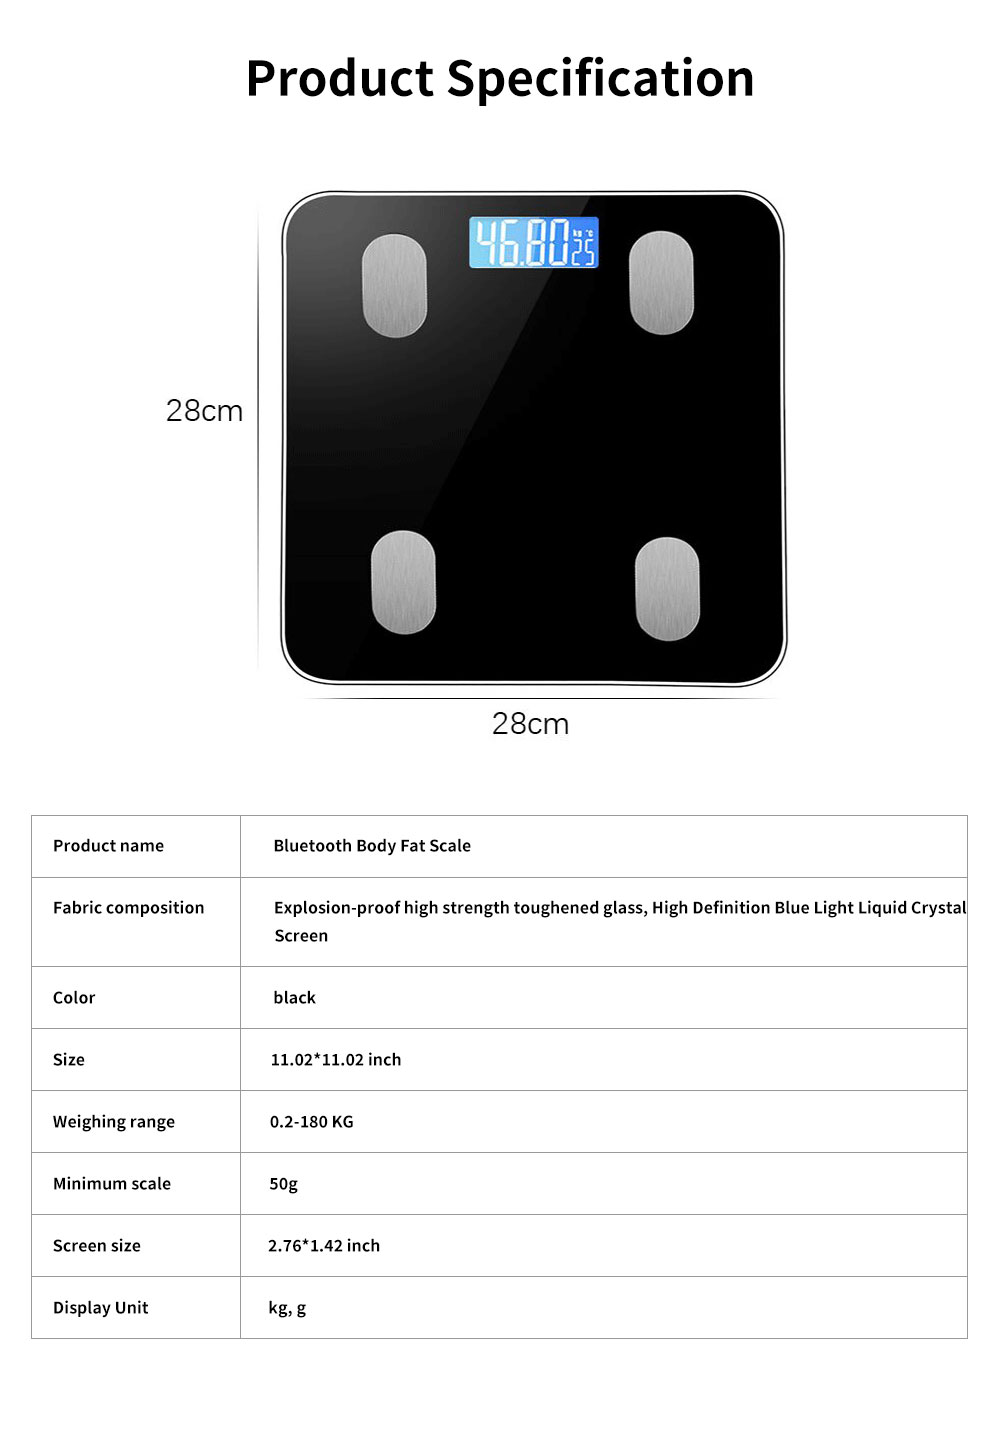 Adult Intelligent Bluetooth Body Fat Scale, Multifunctional Household Electronic Scale, High Precision Weight Scale 7